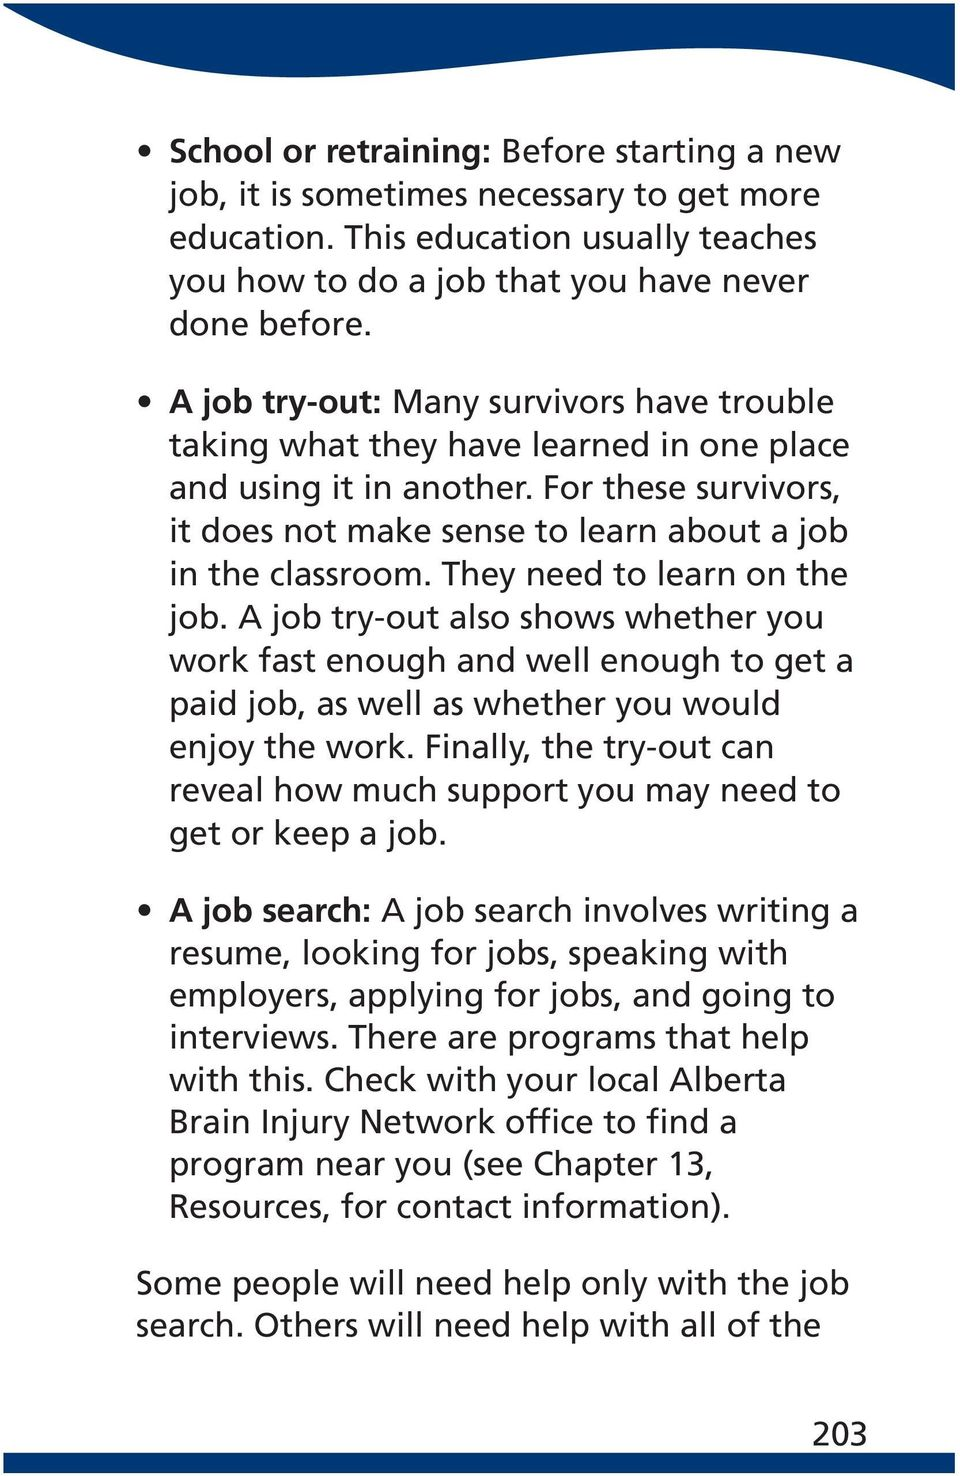 They need to learn on the job. A job try-out also shows whether you work fast enough and well enough to get a paid job, as well as whether you would enjoy the work.